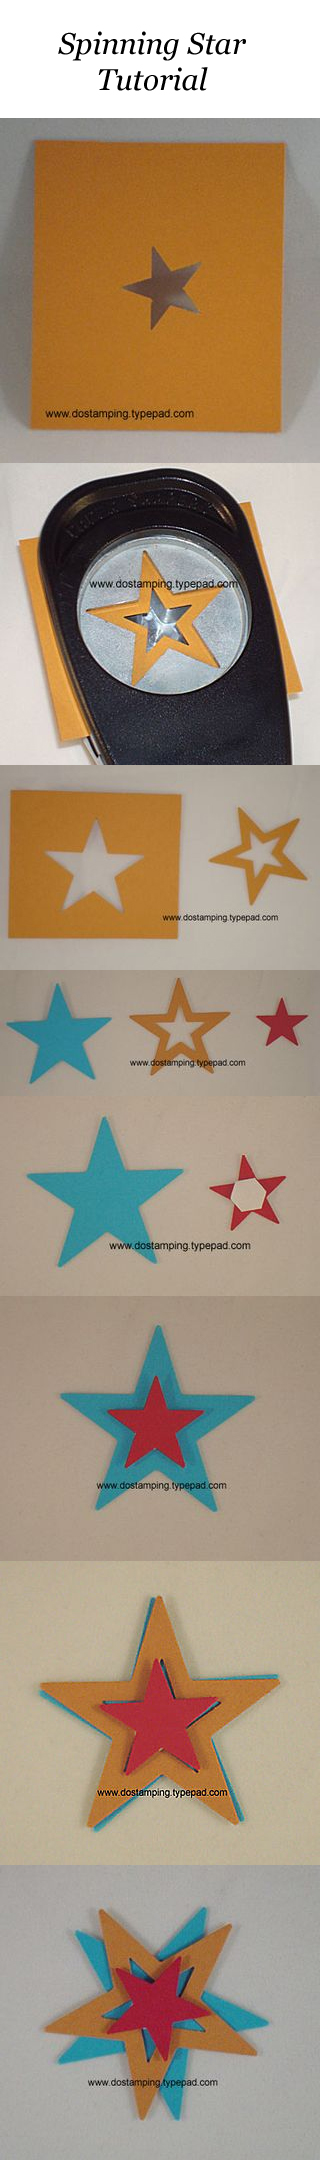 dawn olchefske, dostamping, spinning star tutorial, stampin up